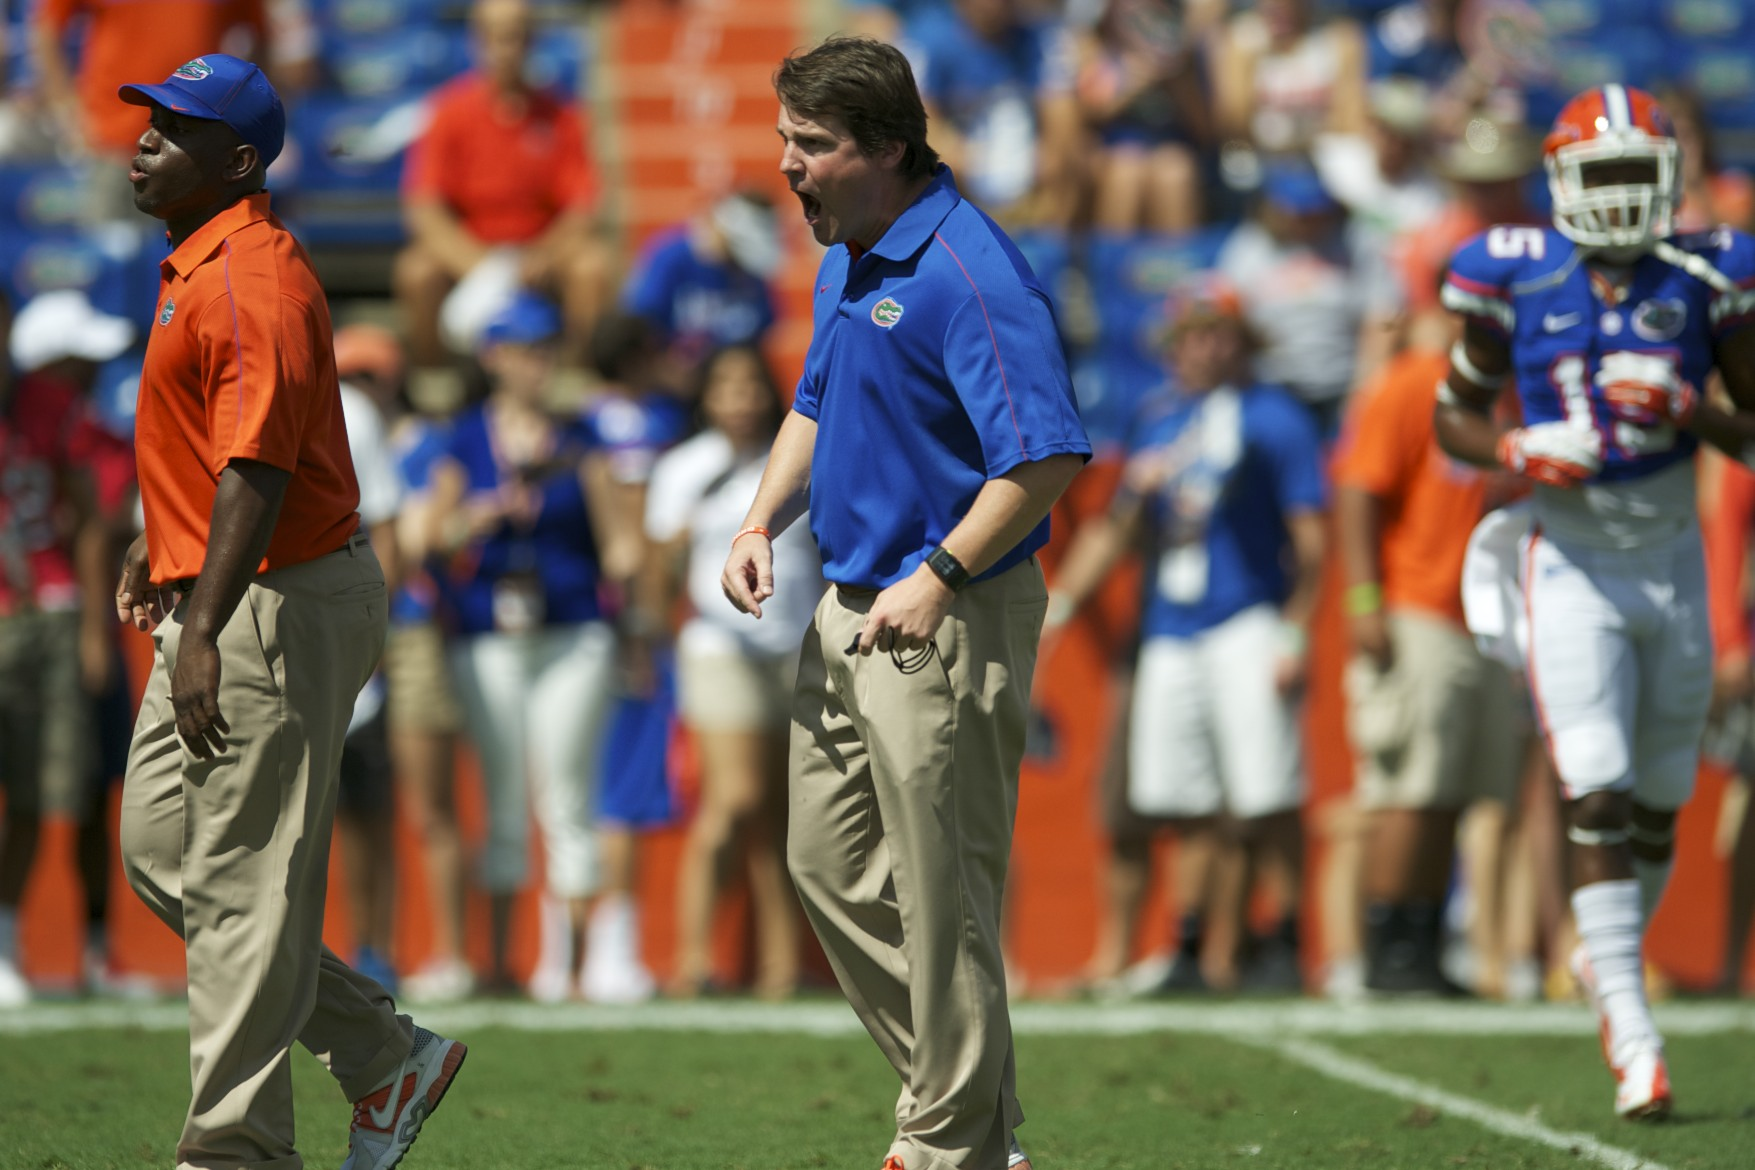 Florida head coach, Will Muschamp, coaches prior to the start of the game on Saturday afternoon.